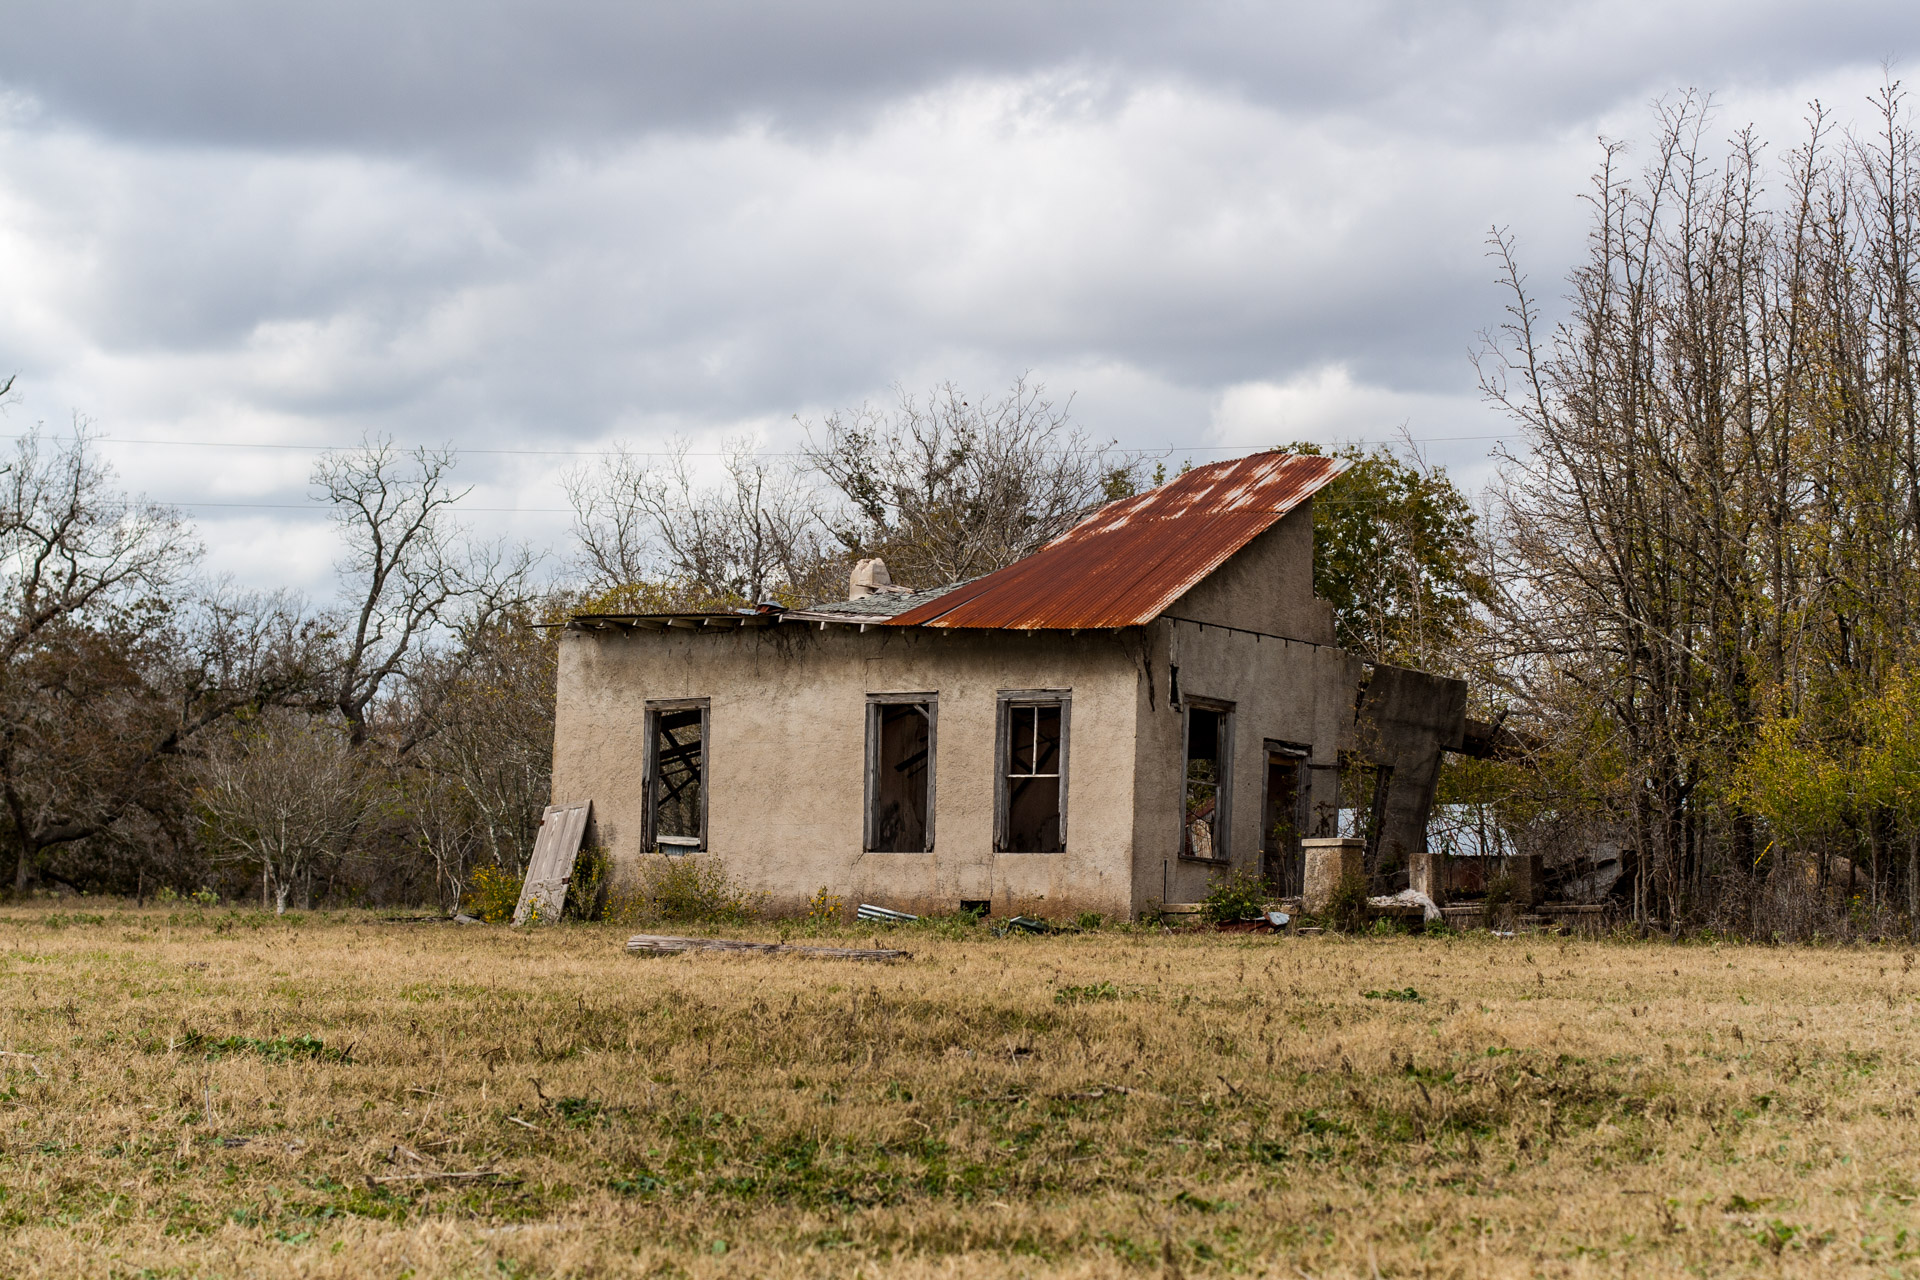 La Grange, Texas - An Impacted Roof Farmhouse (front right)